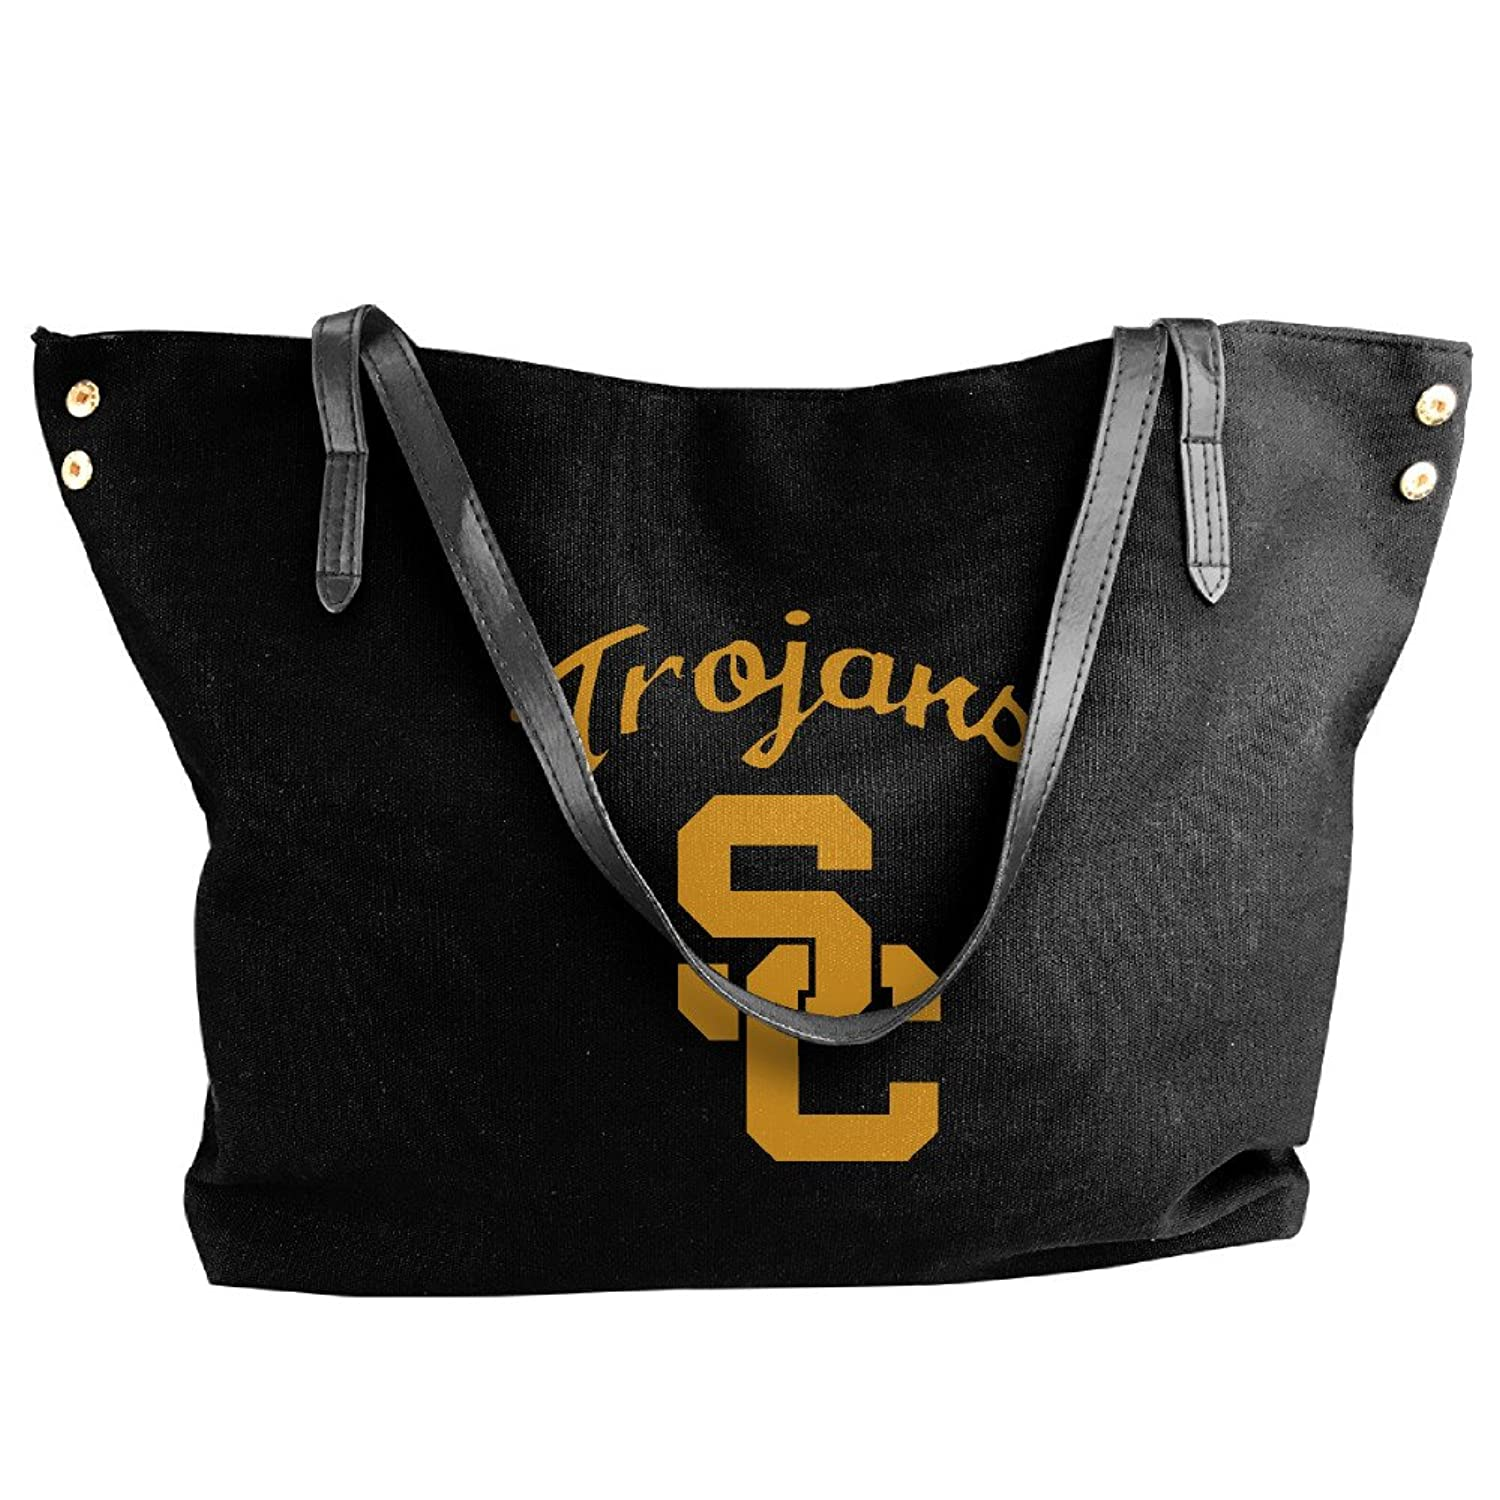 USC Trojans Practice Therma FIT Performance Handbag Shoulder Bag For Women